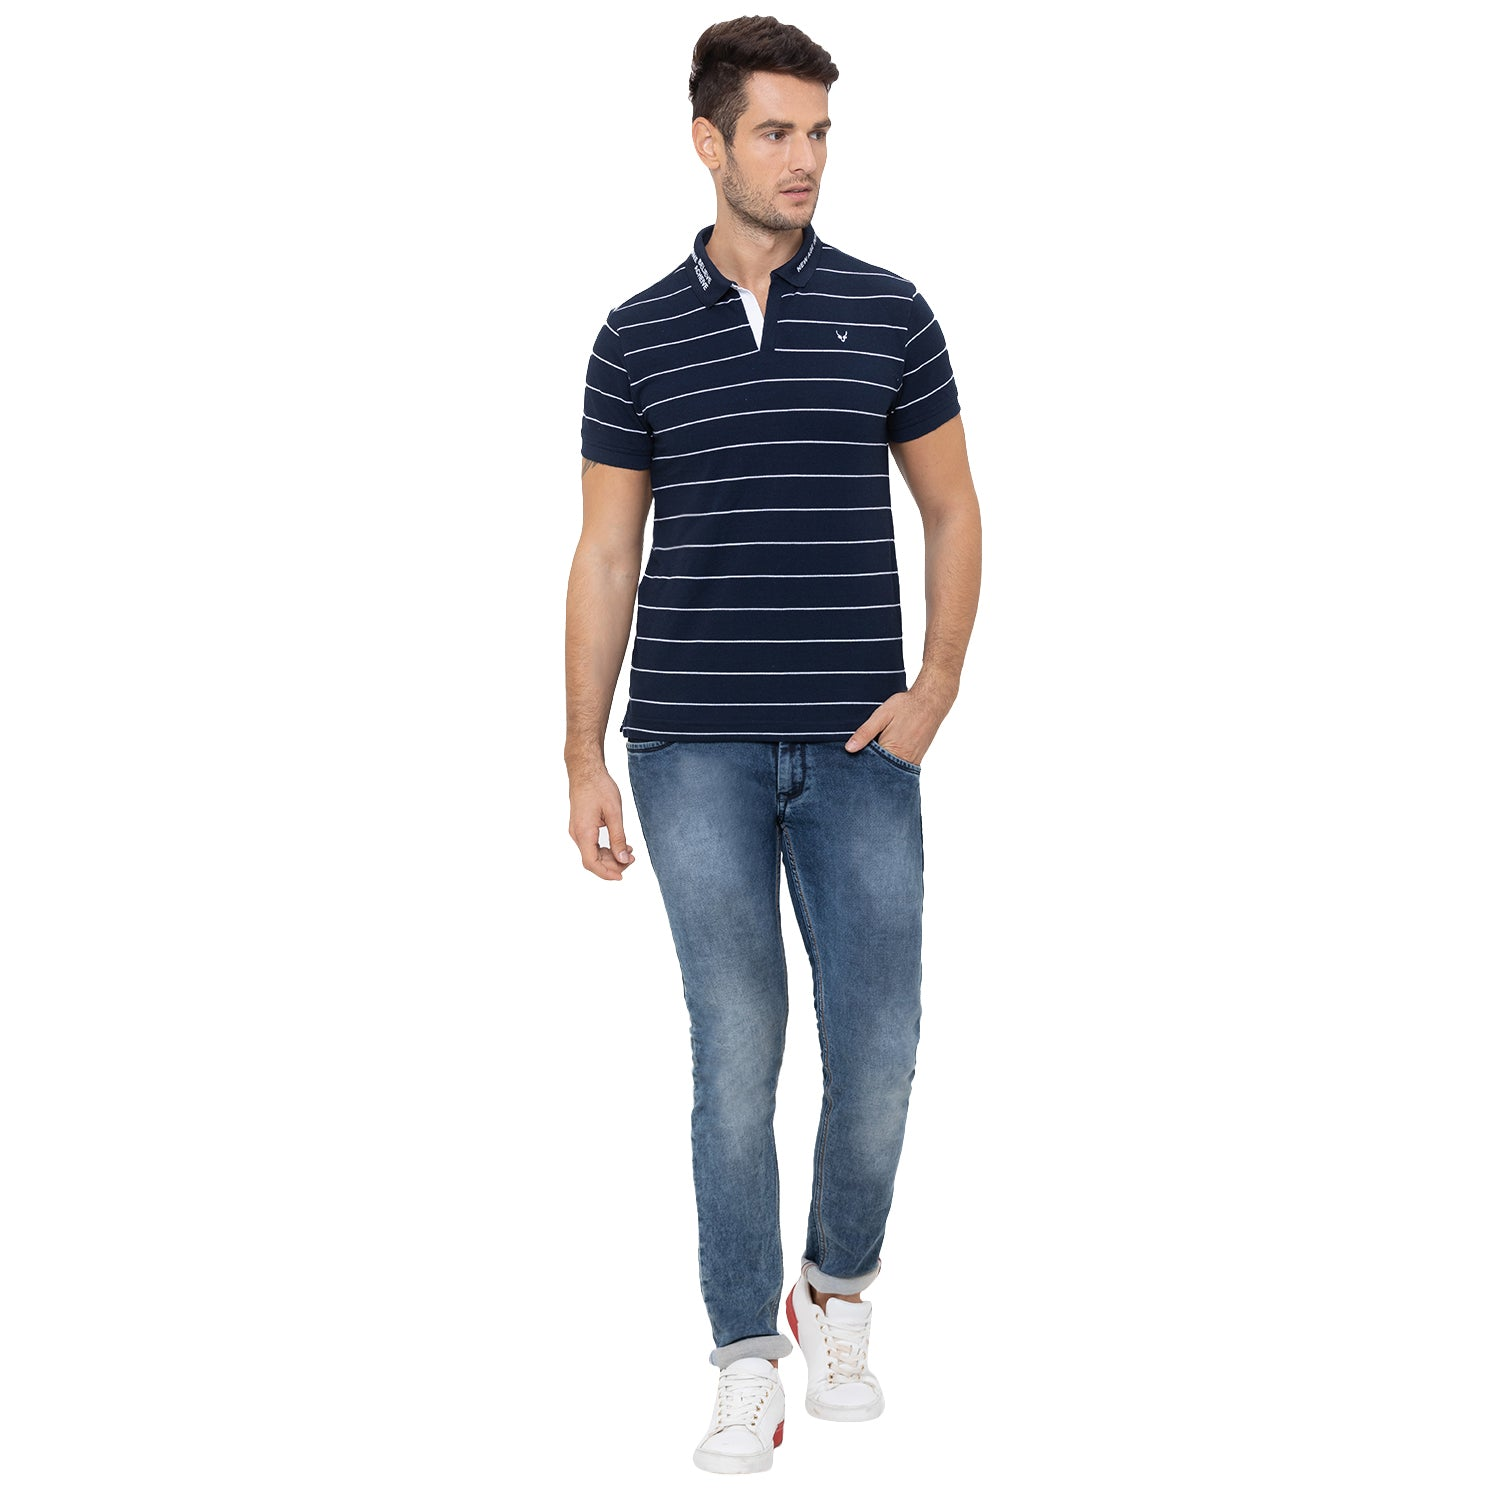 Globus Navy Blue Striped Polo T-Shirt-2